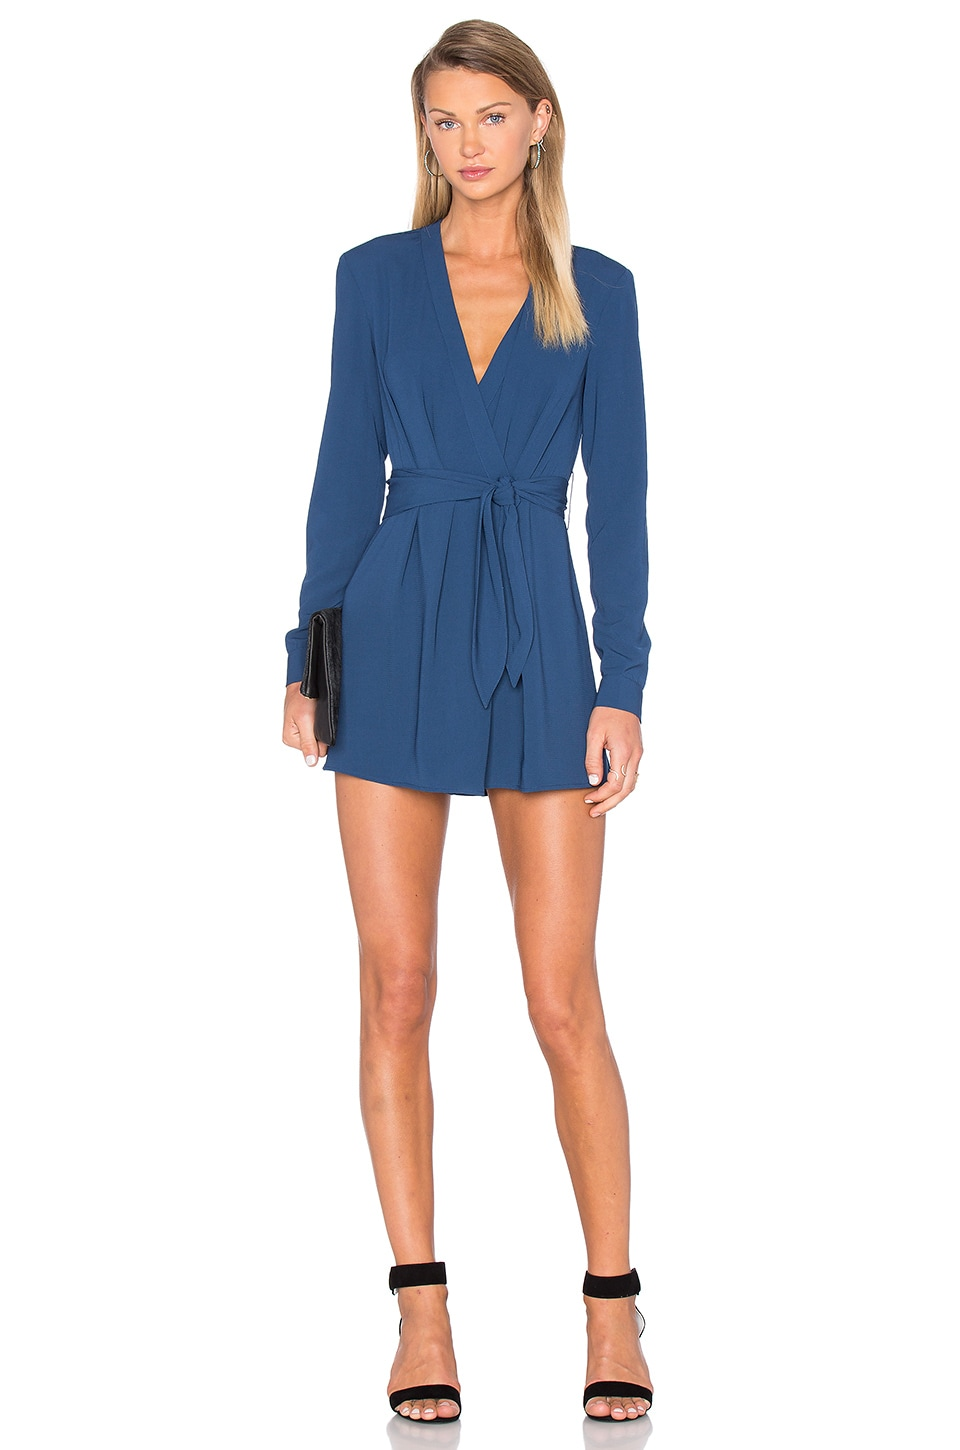 The Fifth Label Above & Beyond Playsuit in Petrol Blue